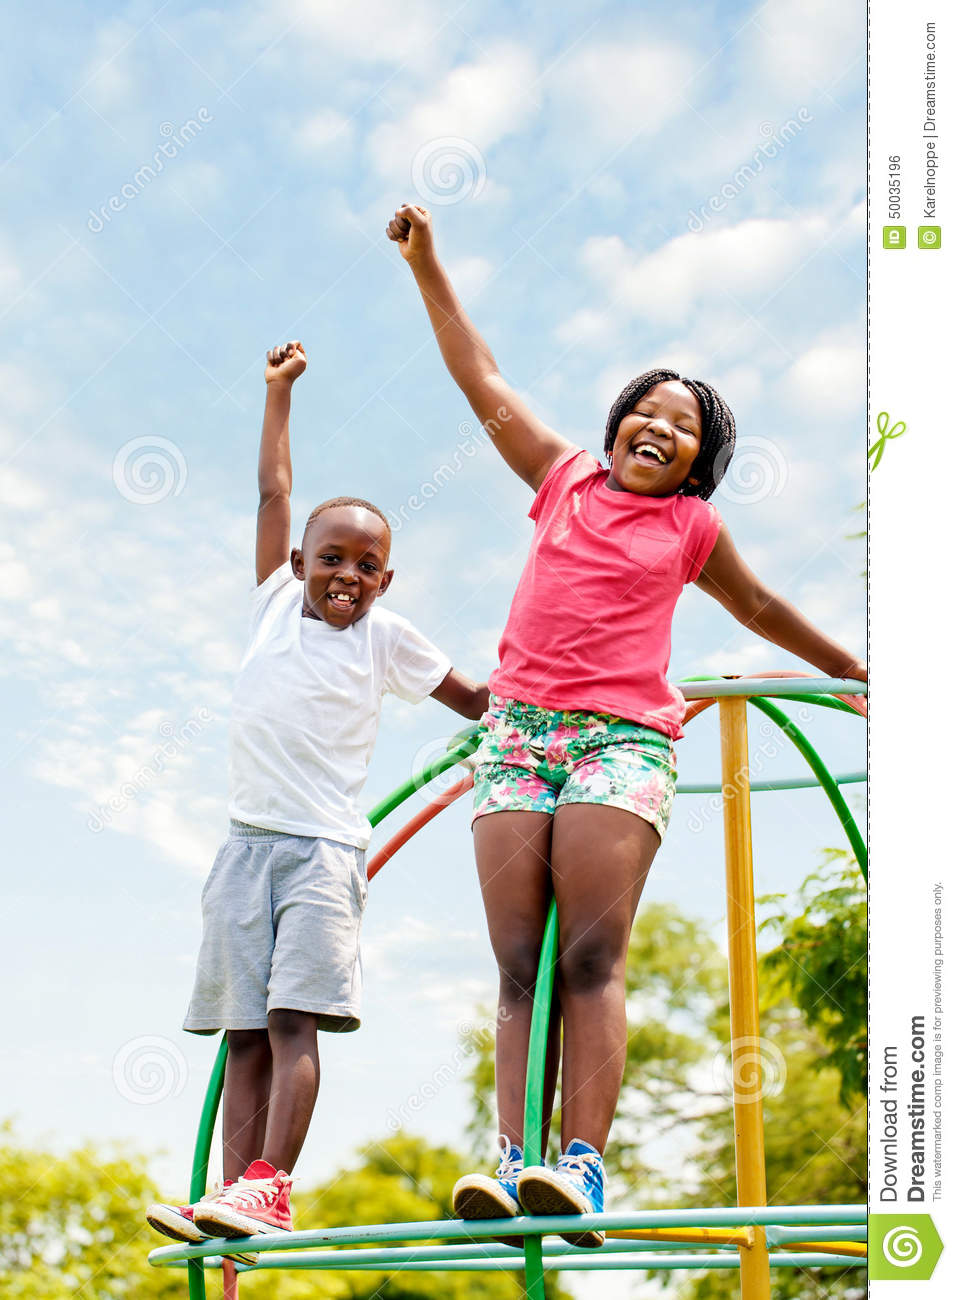 African kids shouting and raising hands in park.